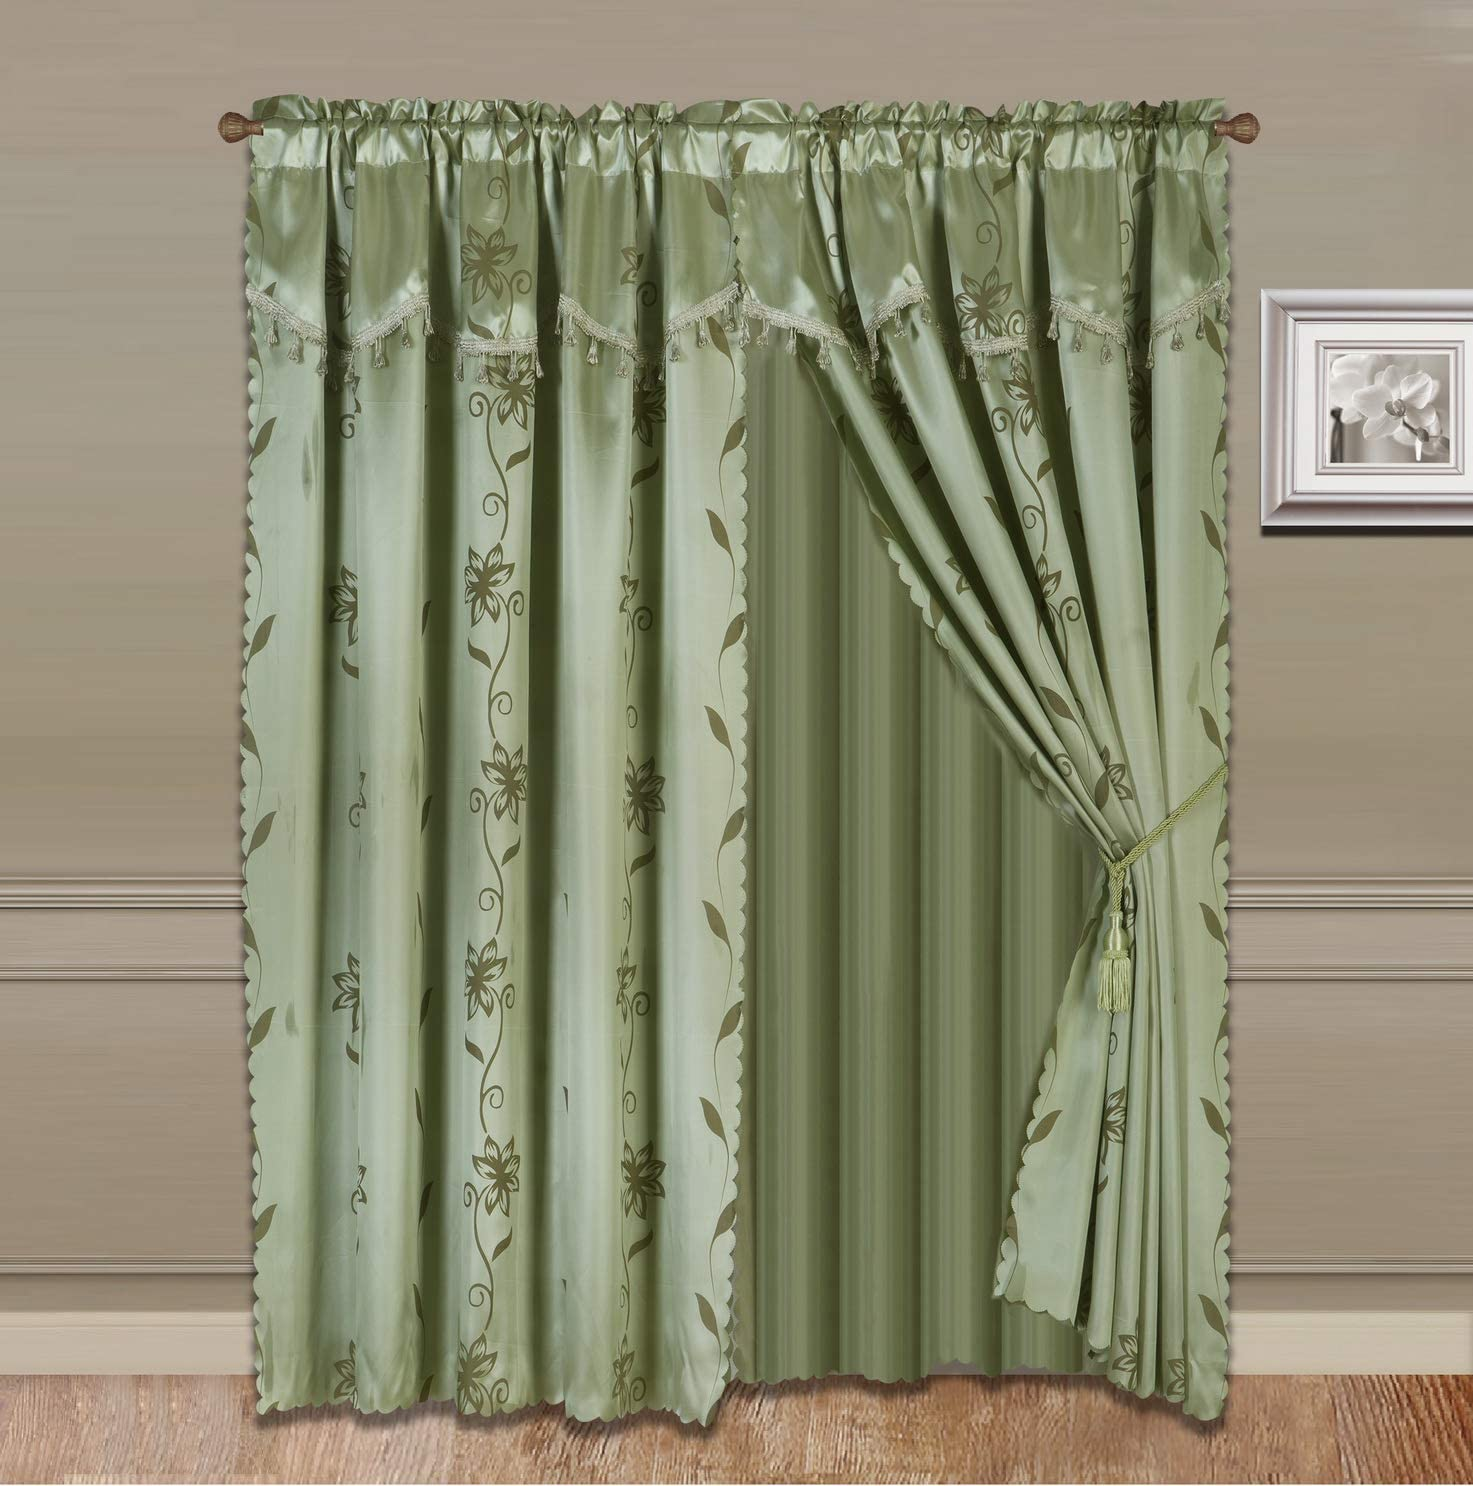 """GorgeousHomeLinen (Nada) One Solid Sage Green Elegant Rod Pocket Window Curtain Panel Floral Printed Treatment Drape with Matching tieback in 63"""" 84"""" 95"""" 108"""" Length (84"""" Standard)"""